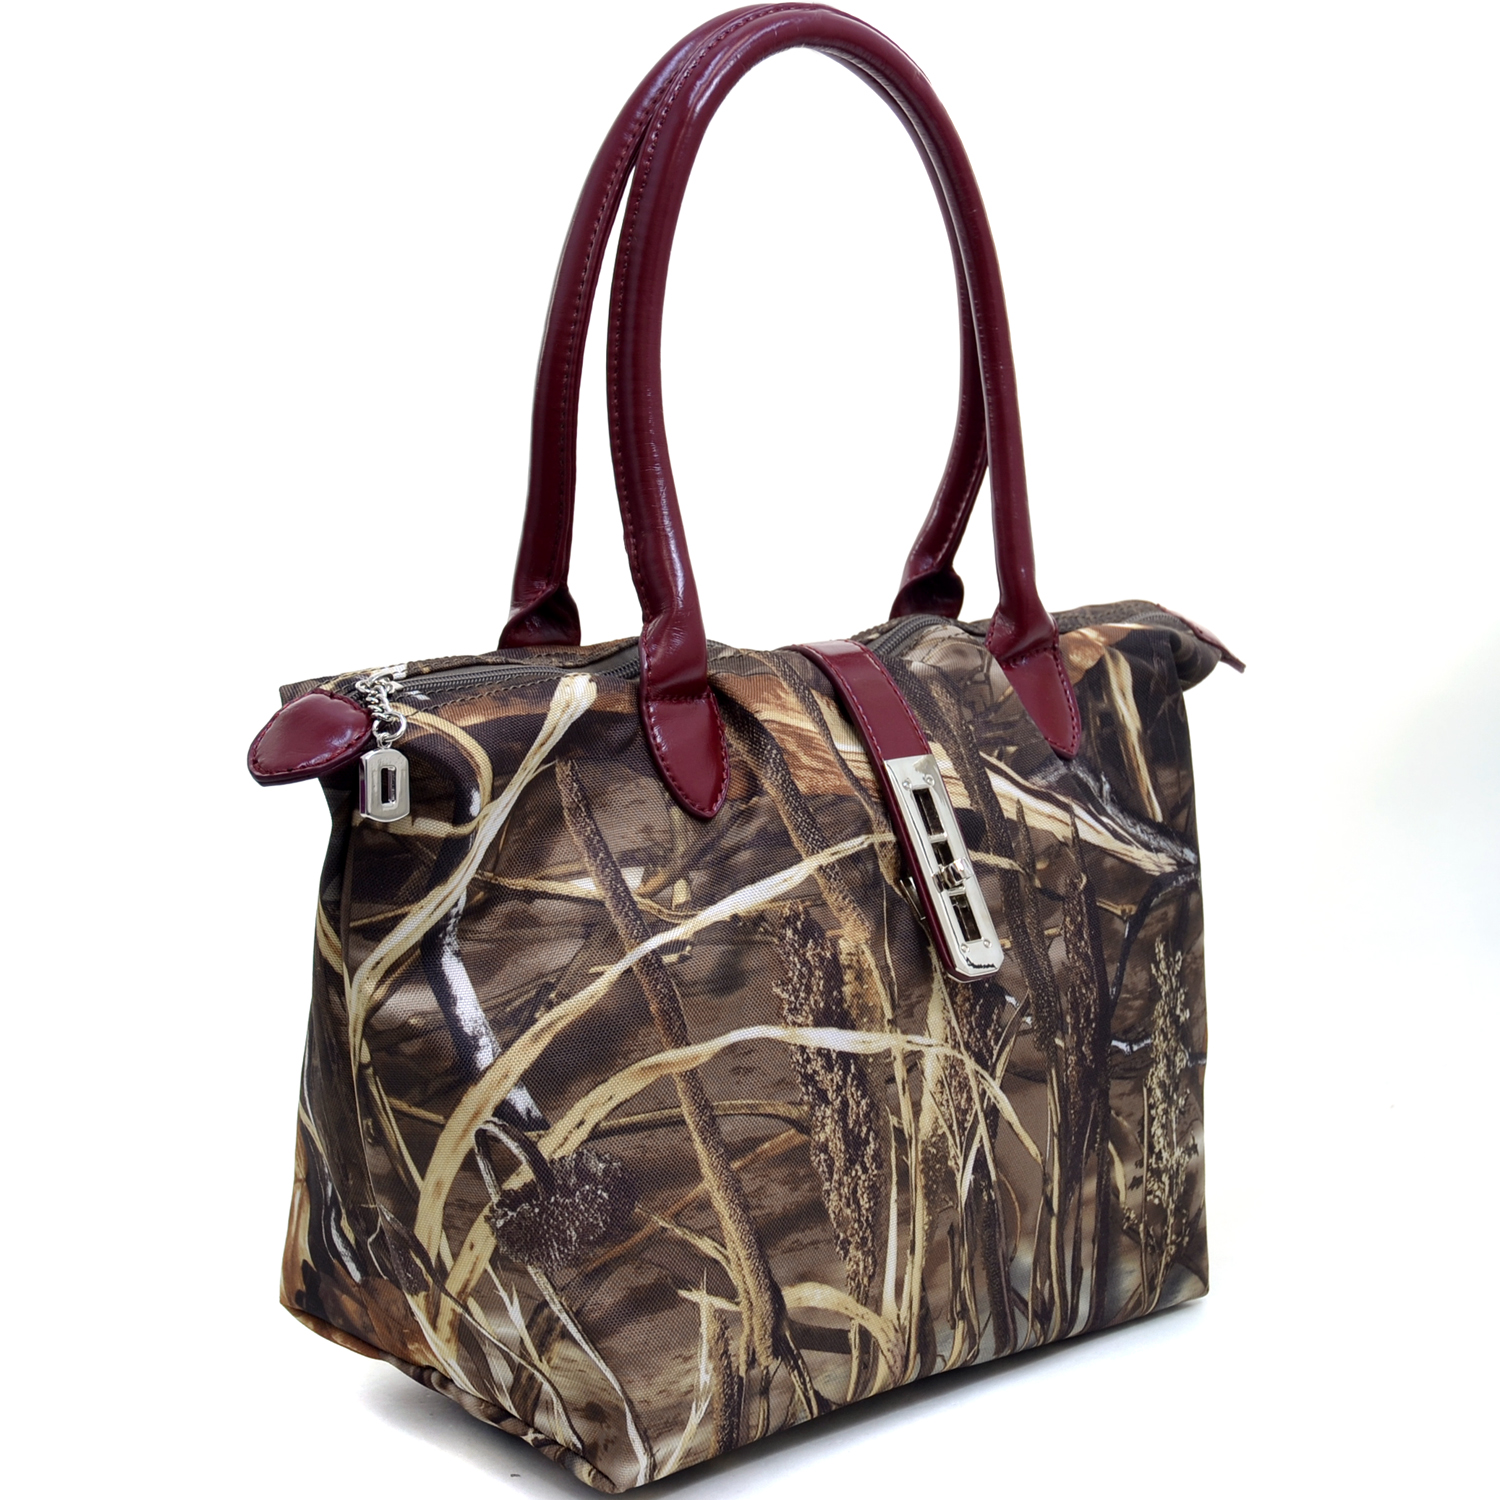 Realtree® Max-4 Camo Twist Lock Tote